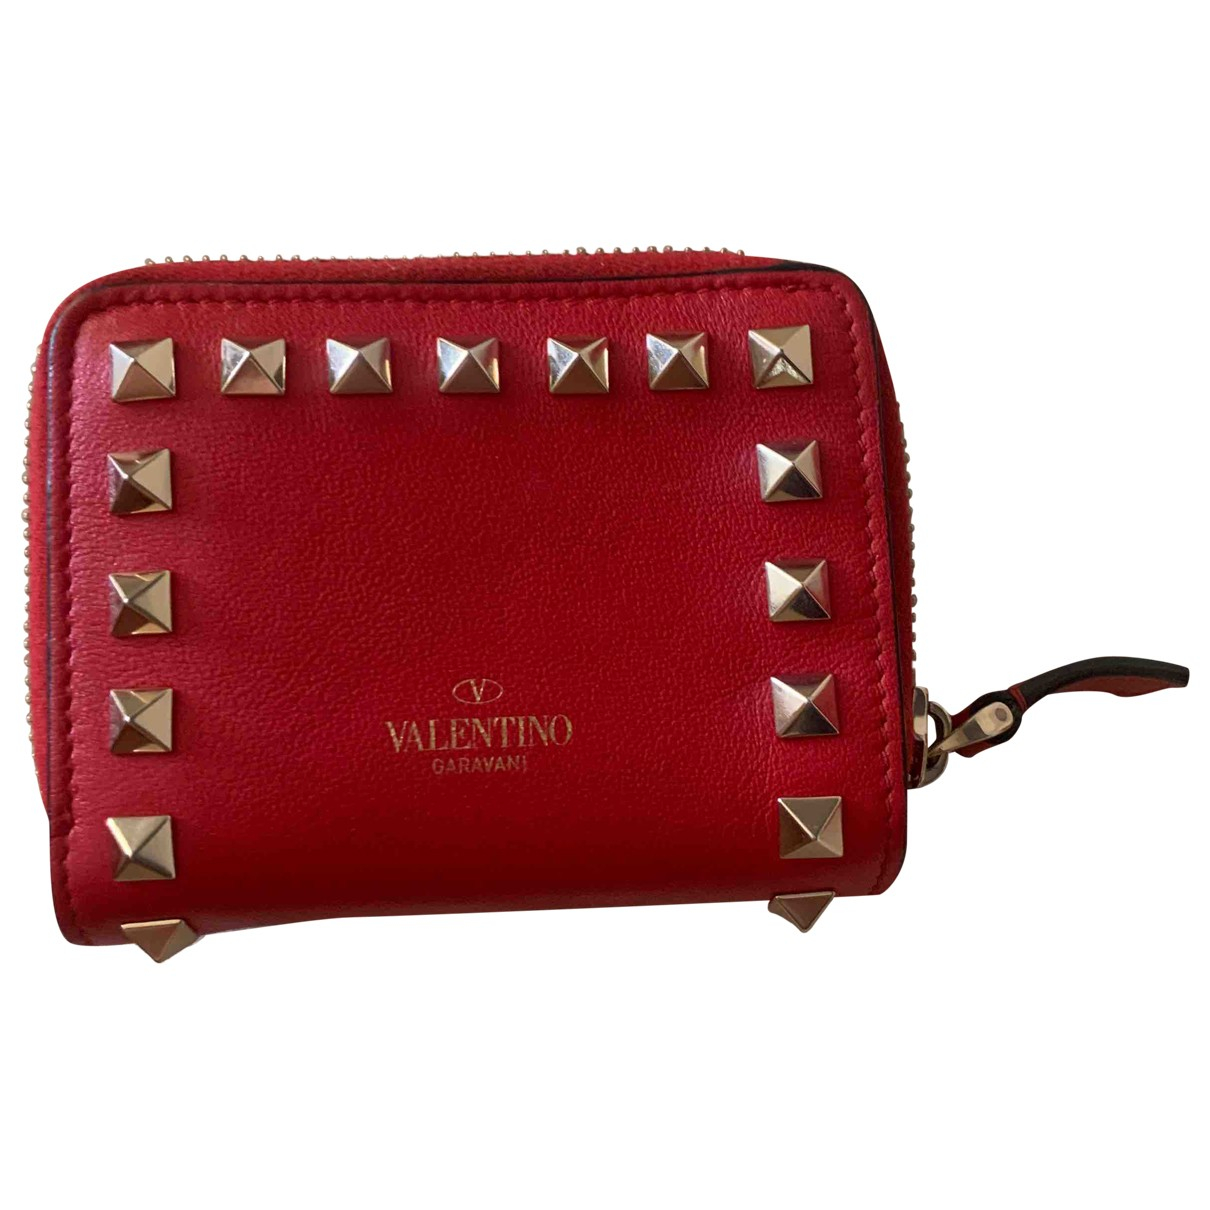 Valentino Garavani \N Red Leather Purses, wallet & cases for Women \N